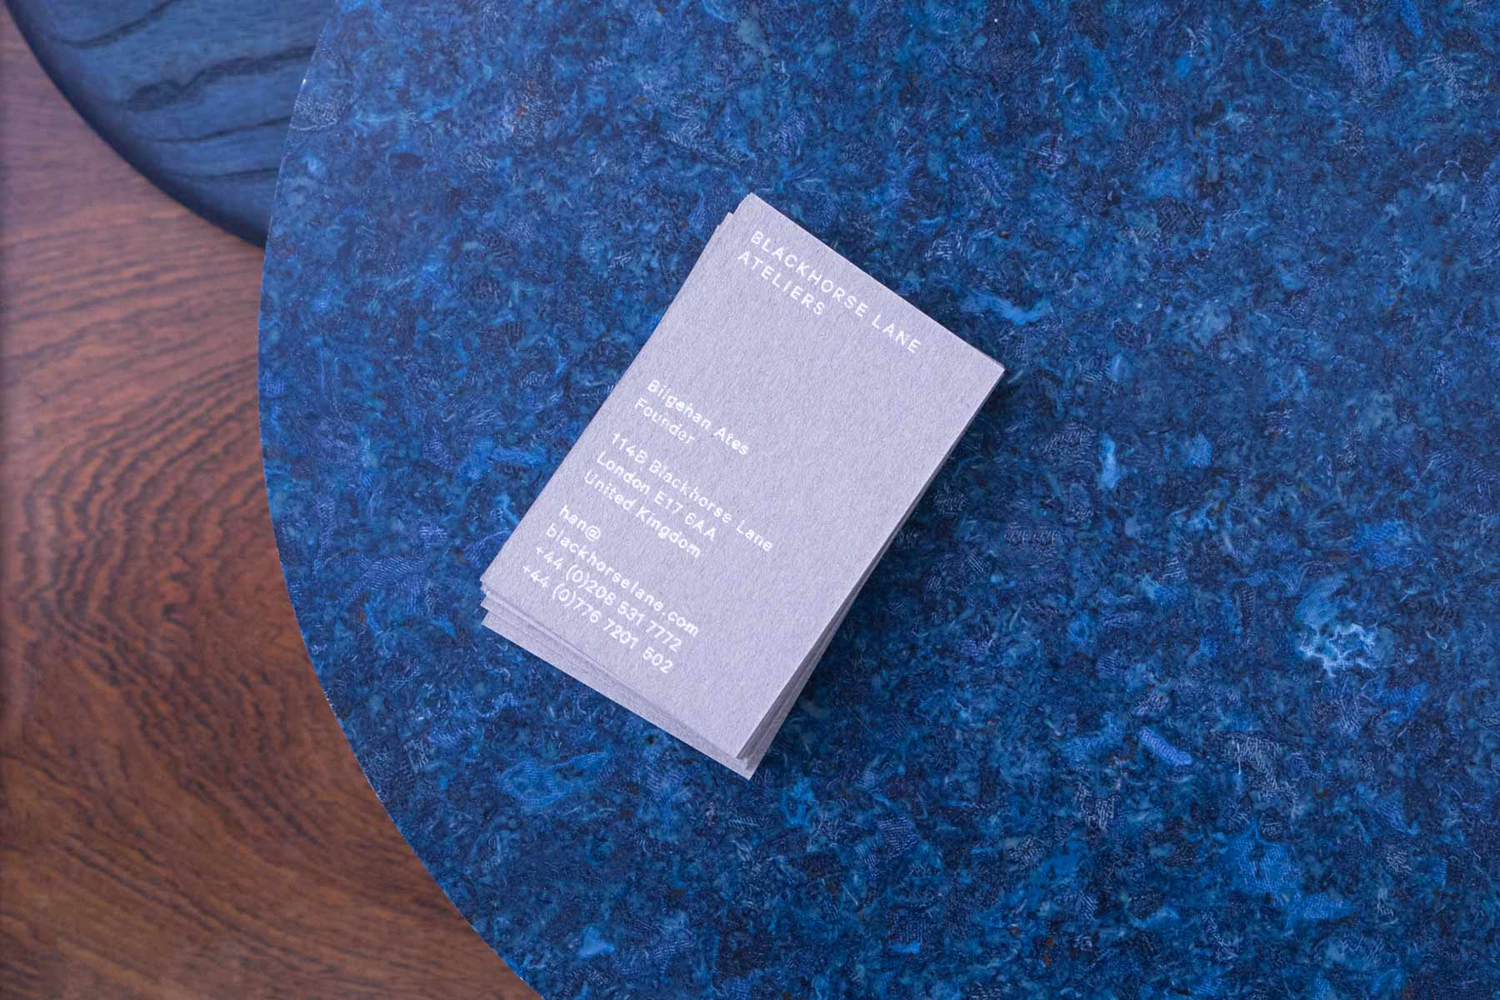 Logo and business cards by StudioSmall for premium selvedge and organic raw denim jeans brand Blackhorse Lane Ateliers.